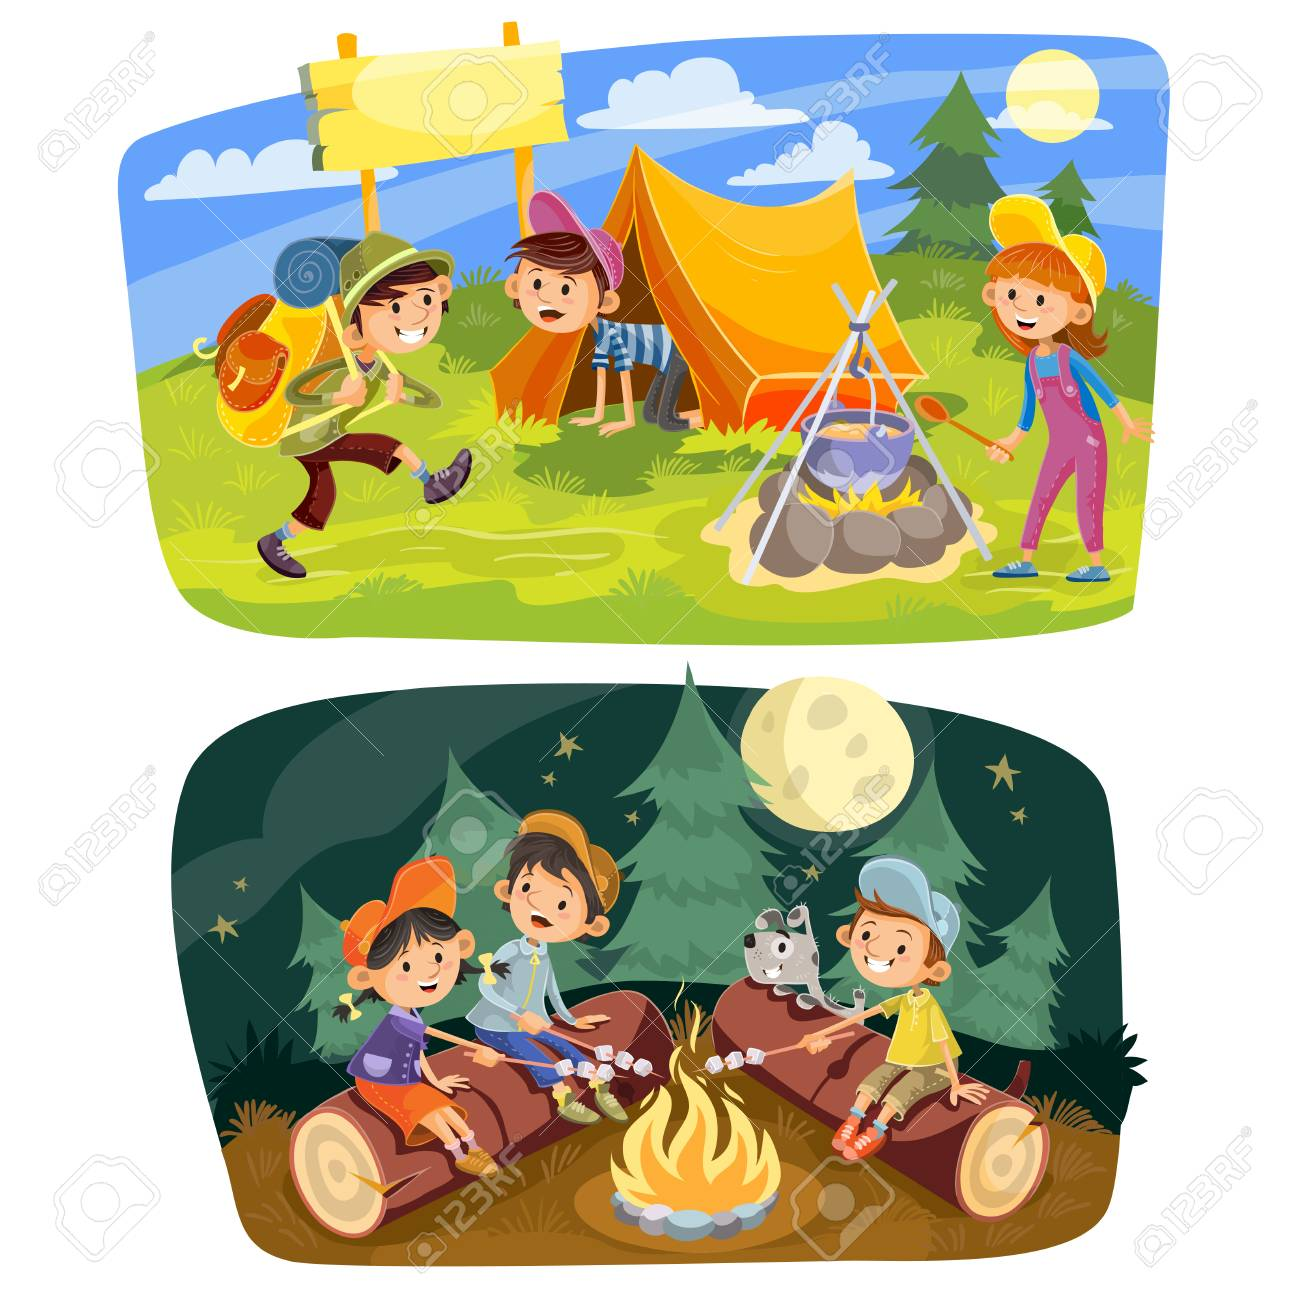 Kids summer camping vector concept illustration. Group of teens make a camp at nature, rest in tent, cook food outdoor and roast marshmallow on campfire in evening time. - 93658096